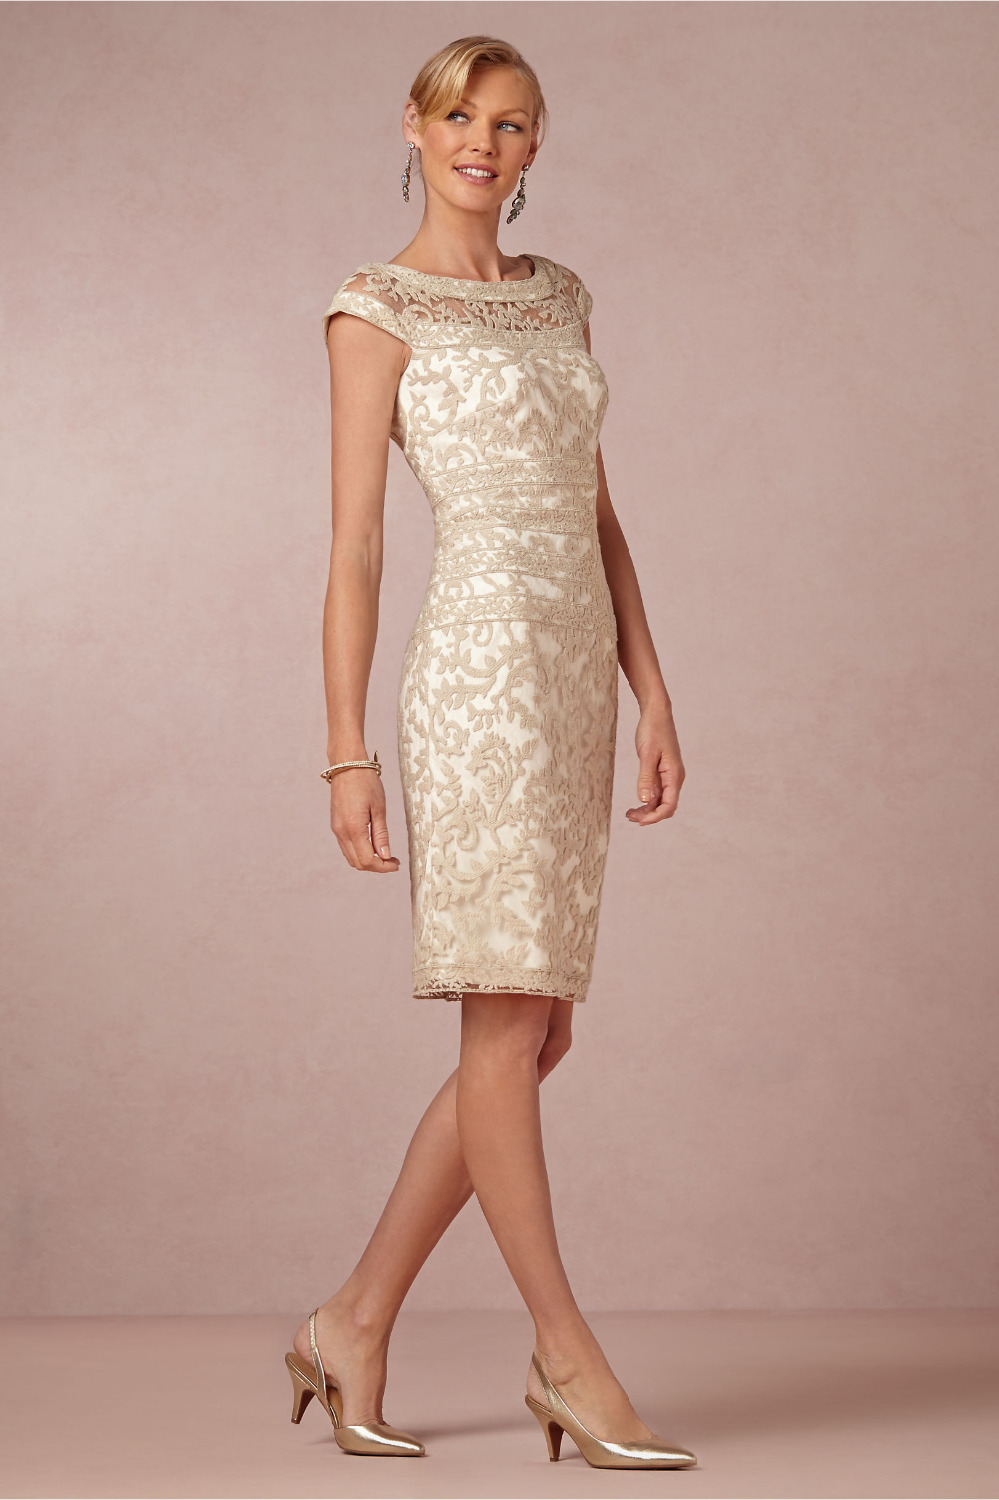 Nordstrom Mother of the Bride Dresses 2015_Other dresses_dressesss